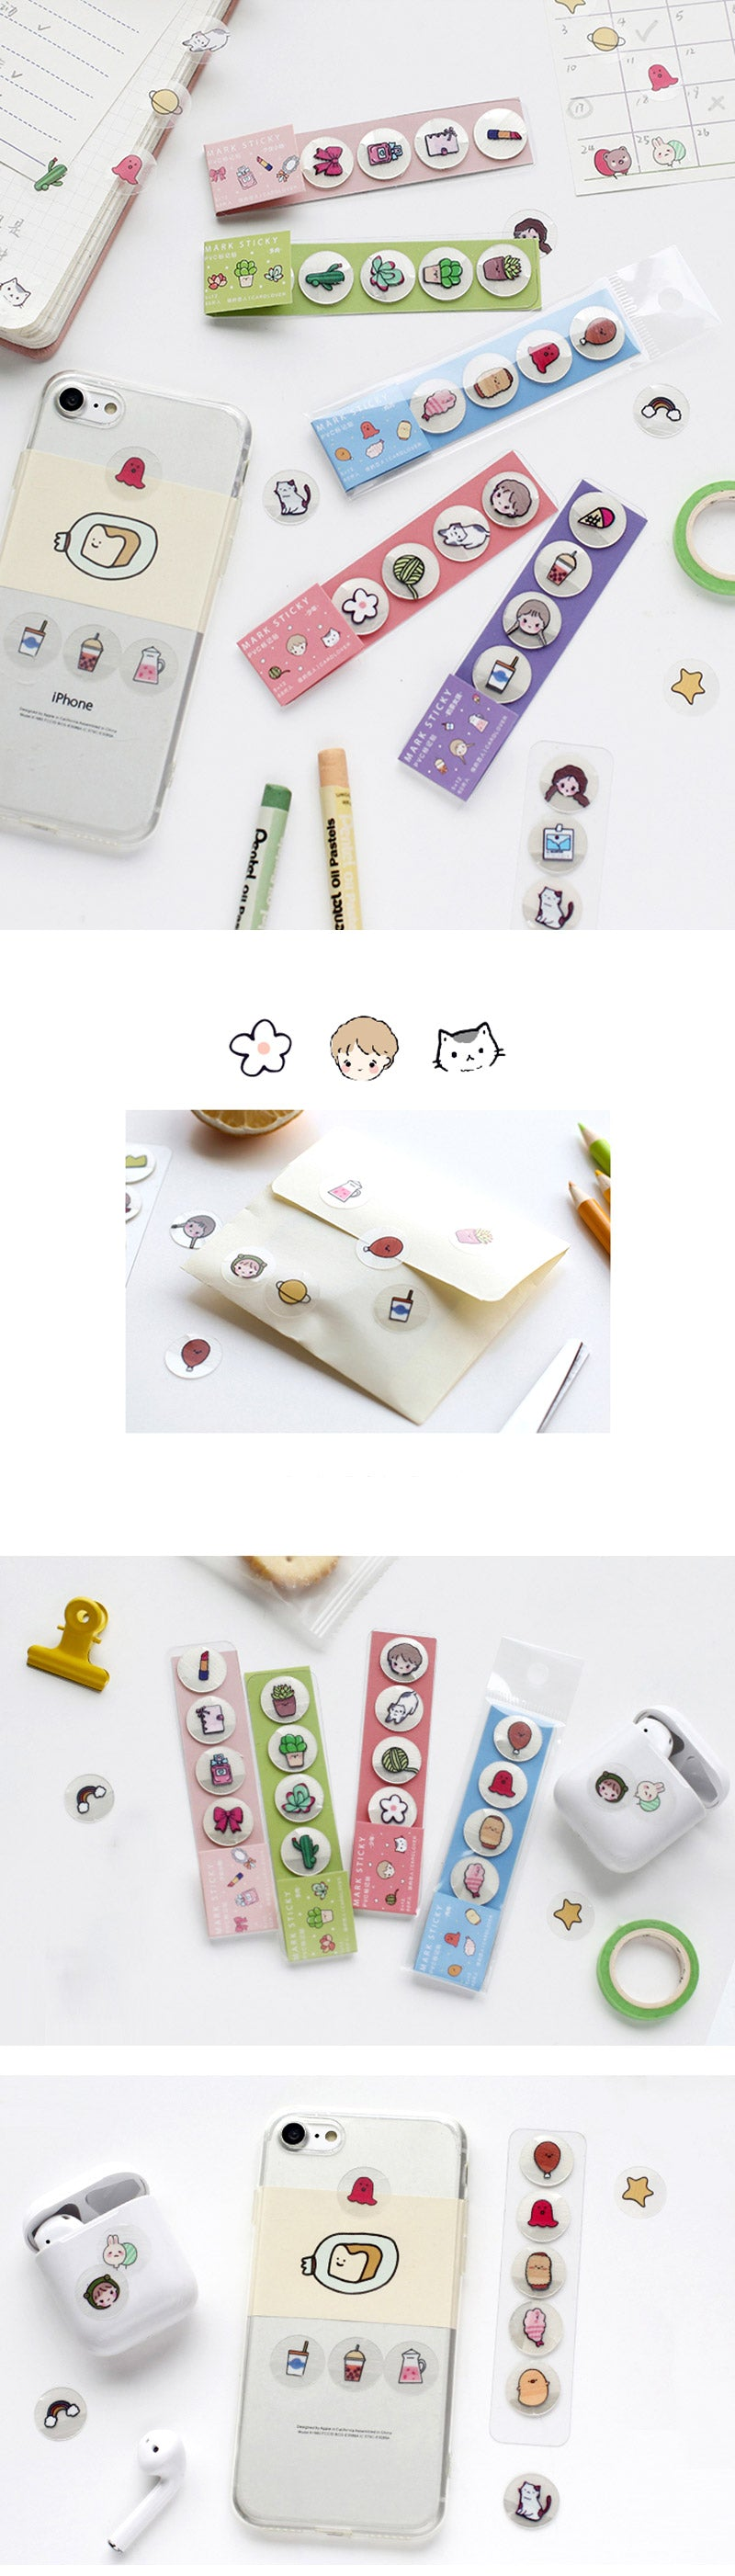 Translucent Kawaii Cartoon Stickers - Detail